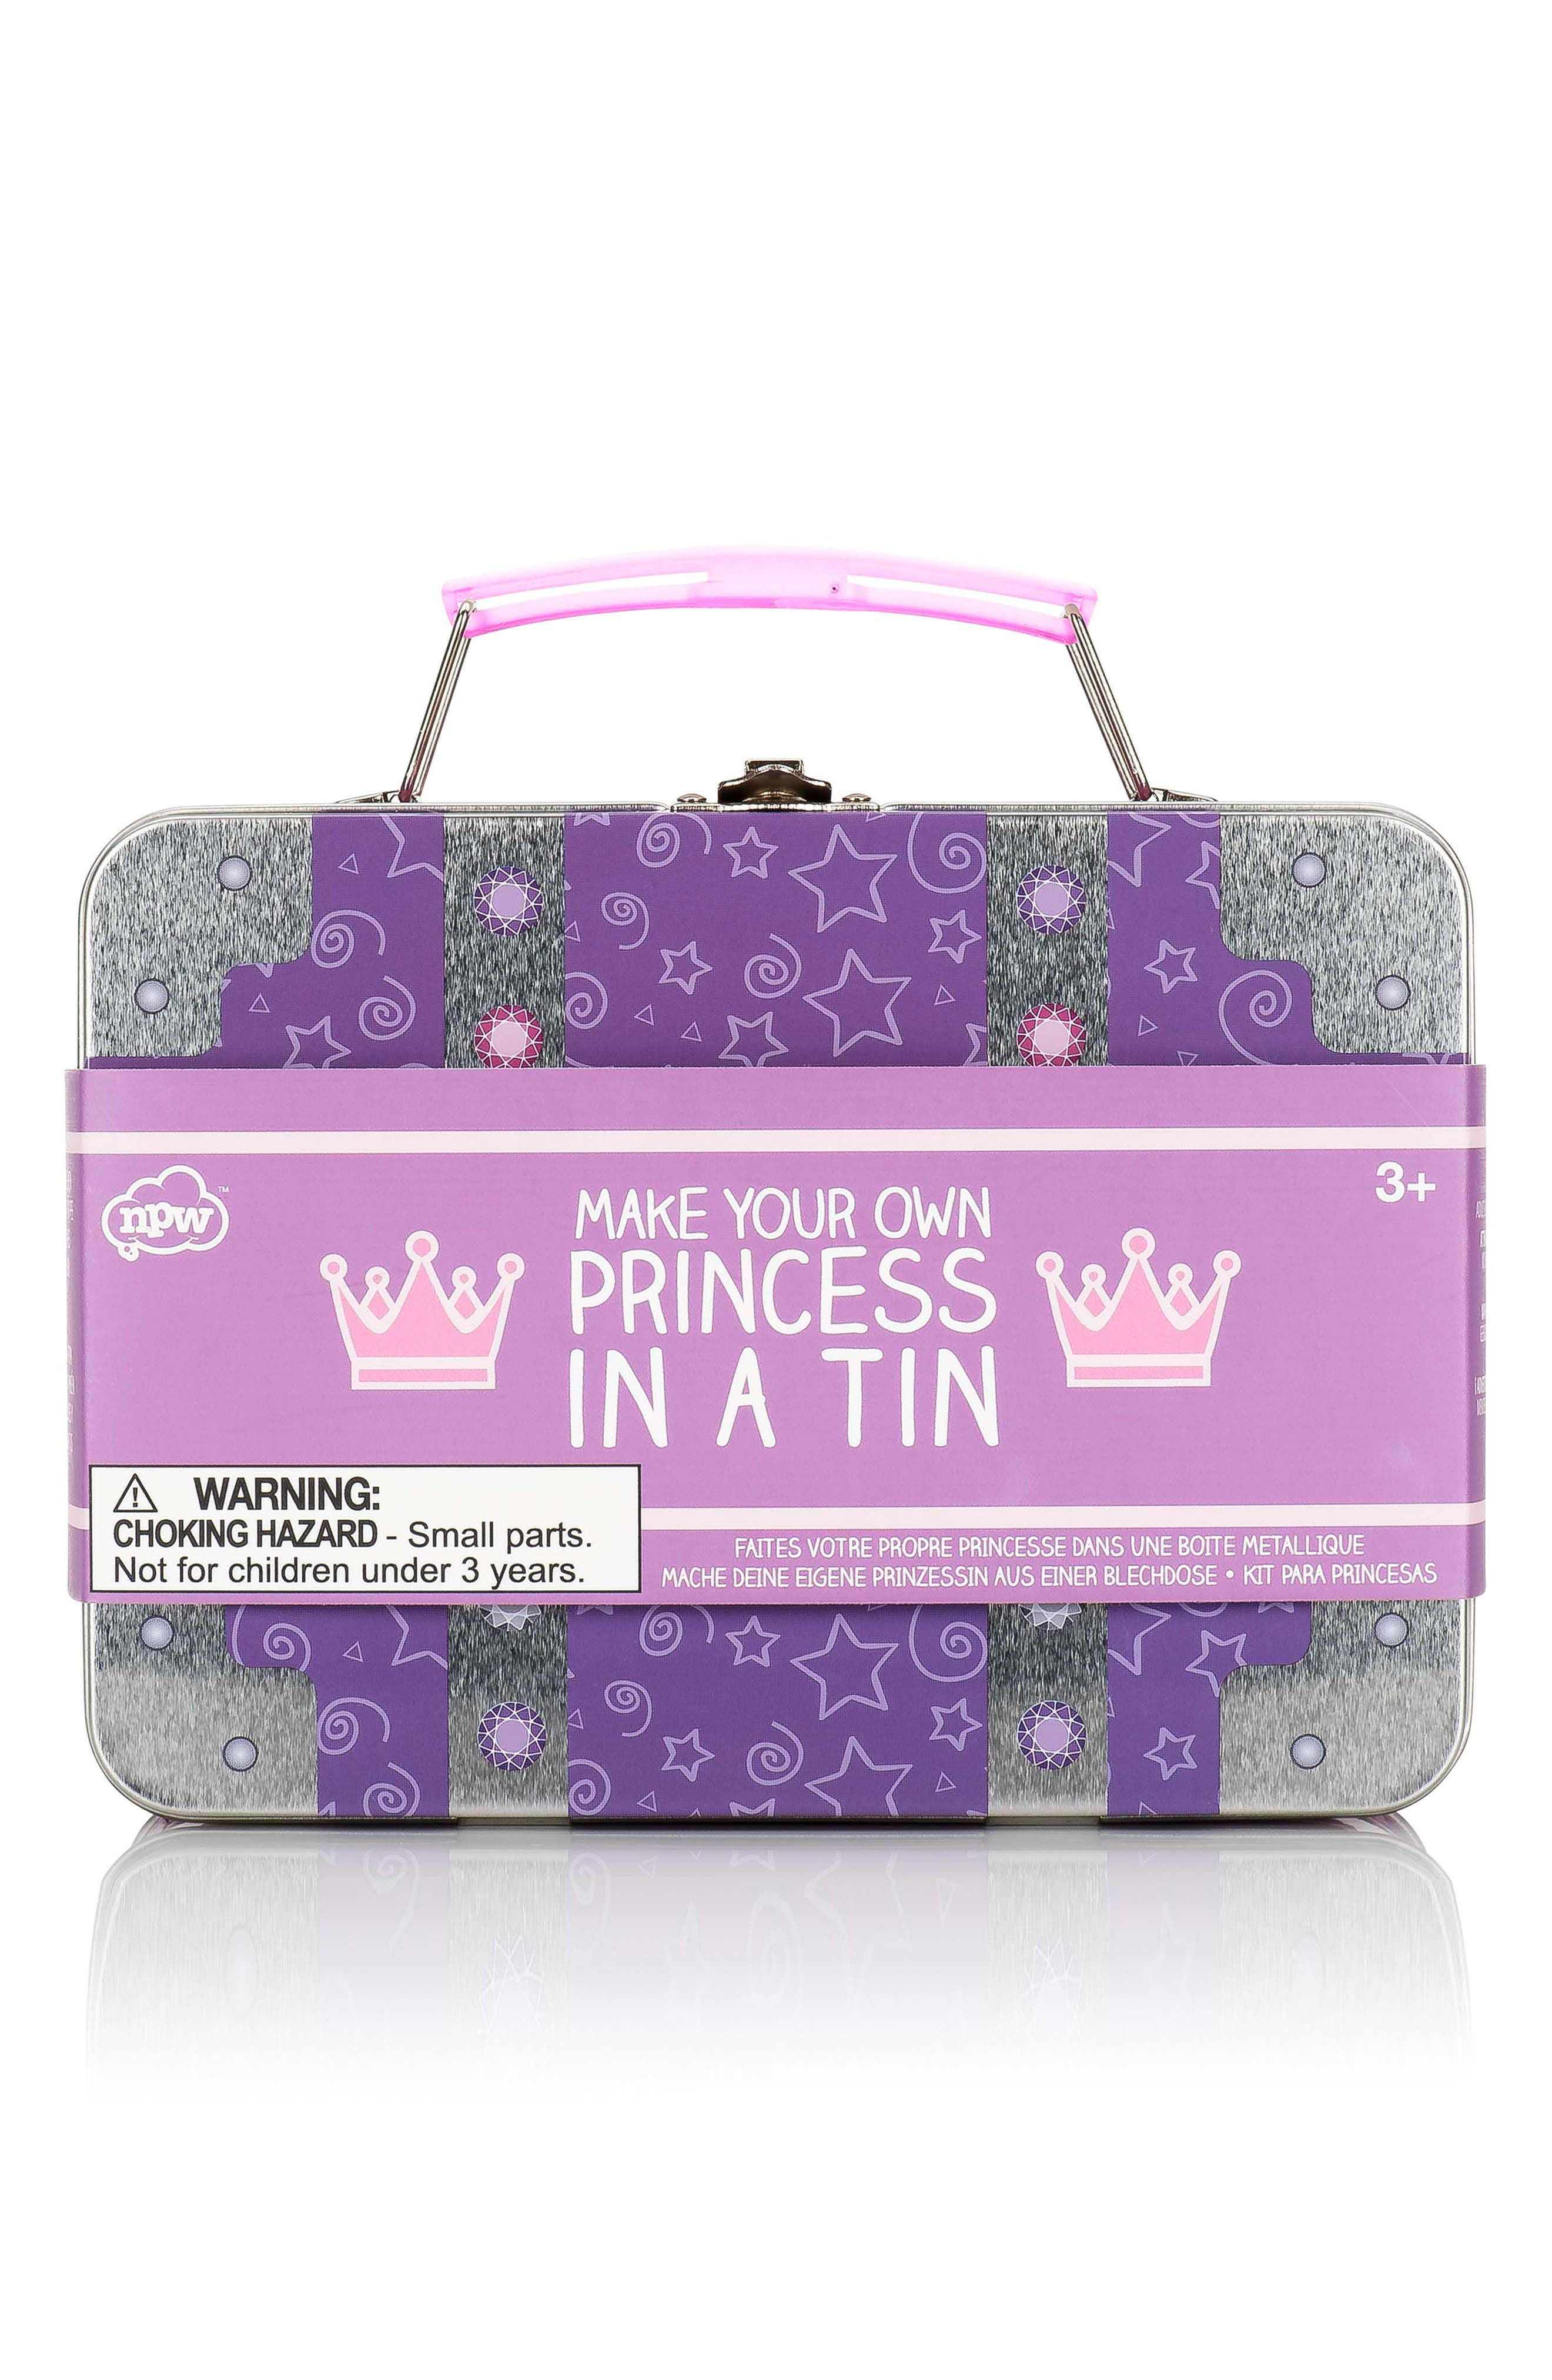 NPW Princess in a Tin Art Set